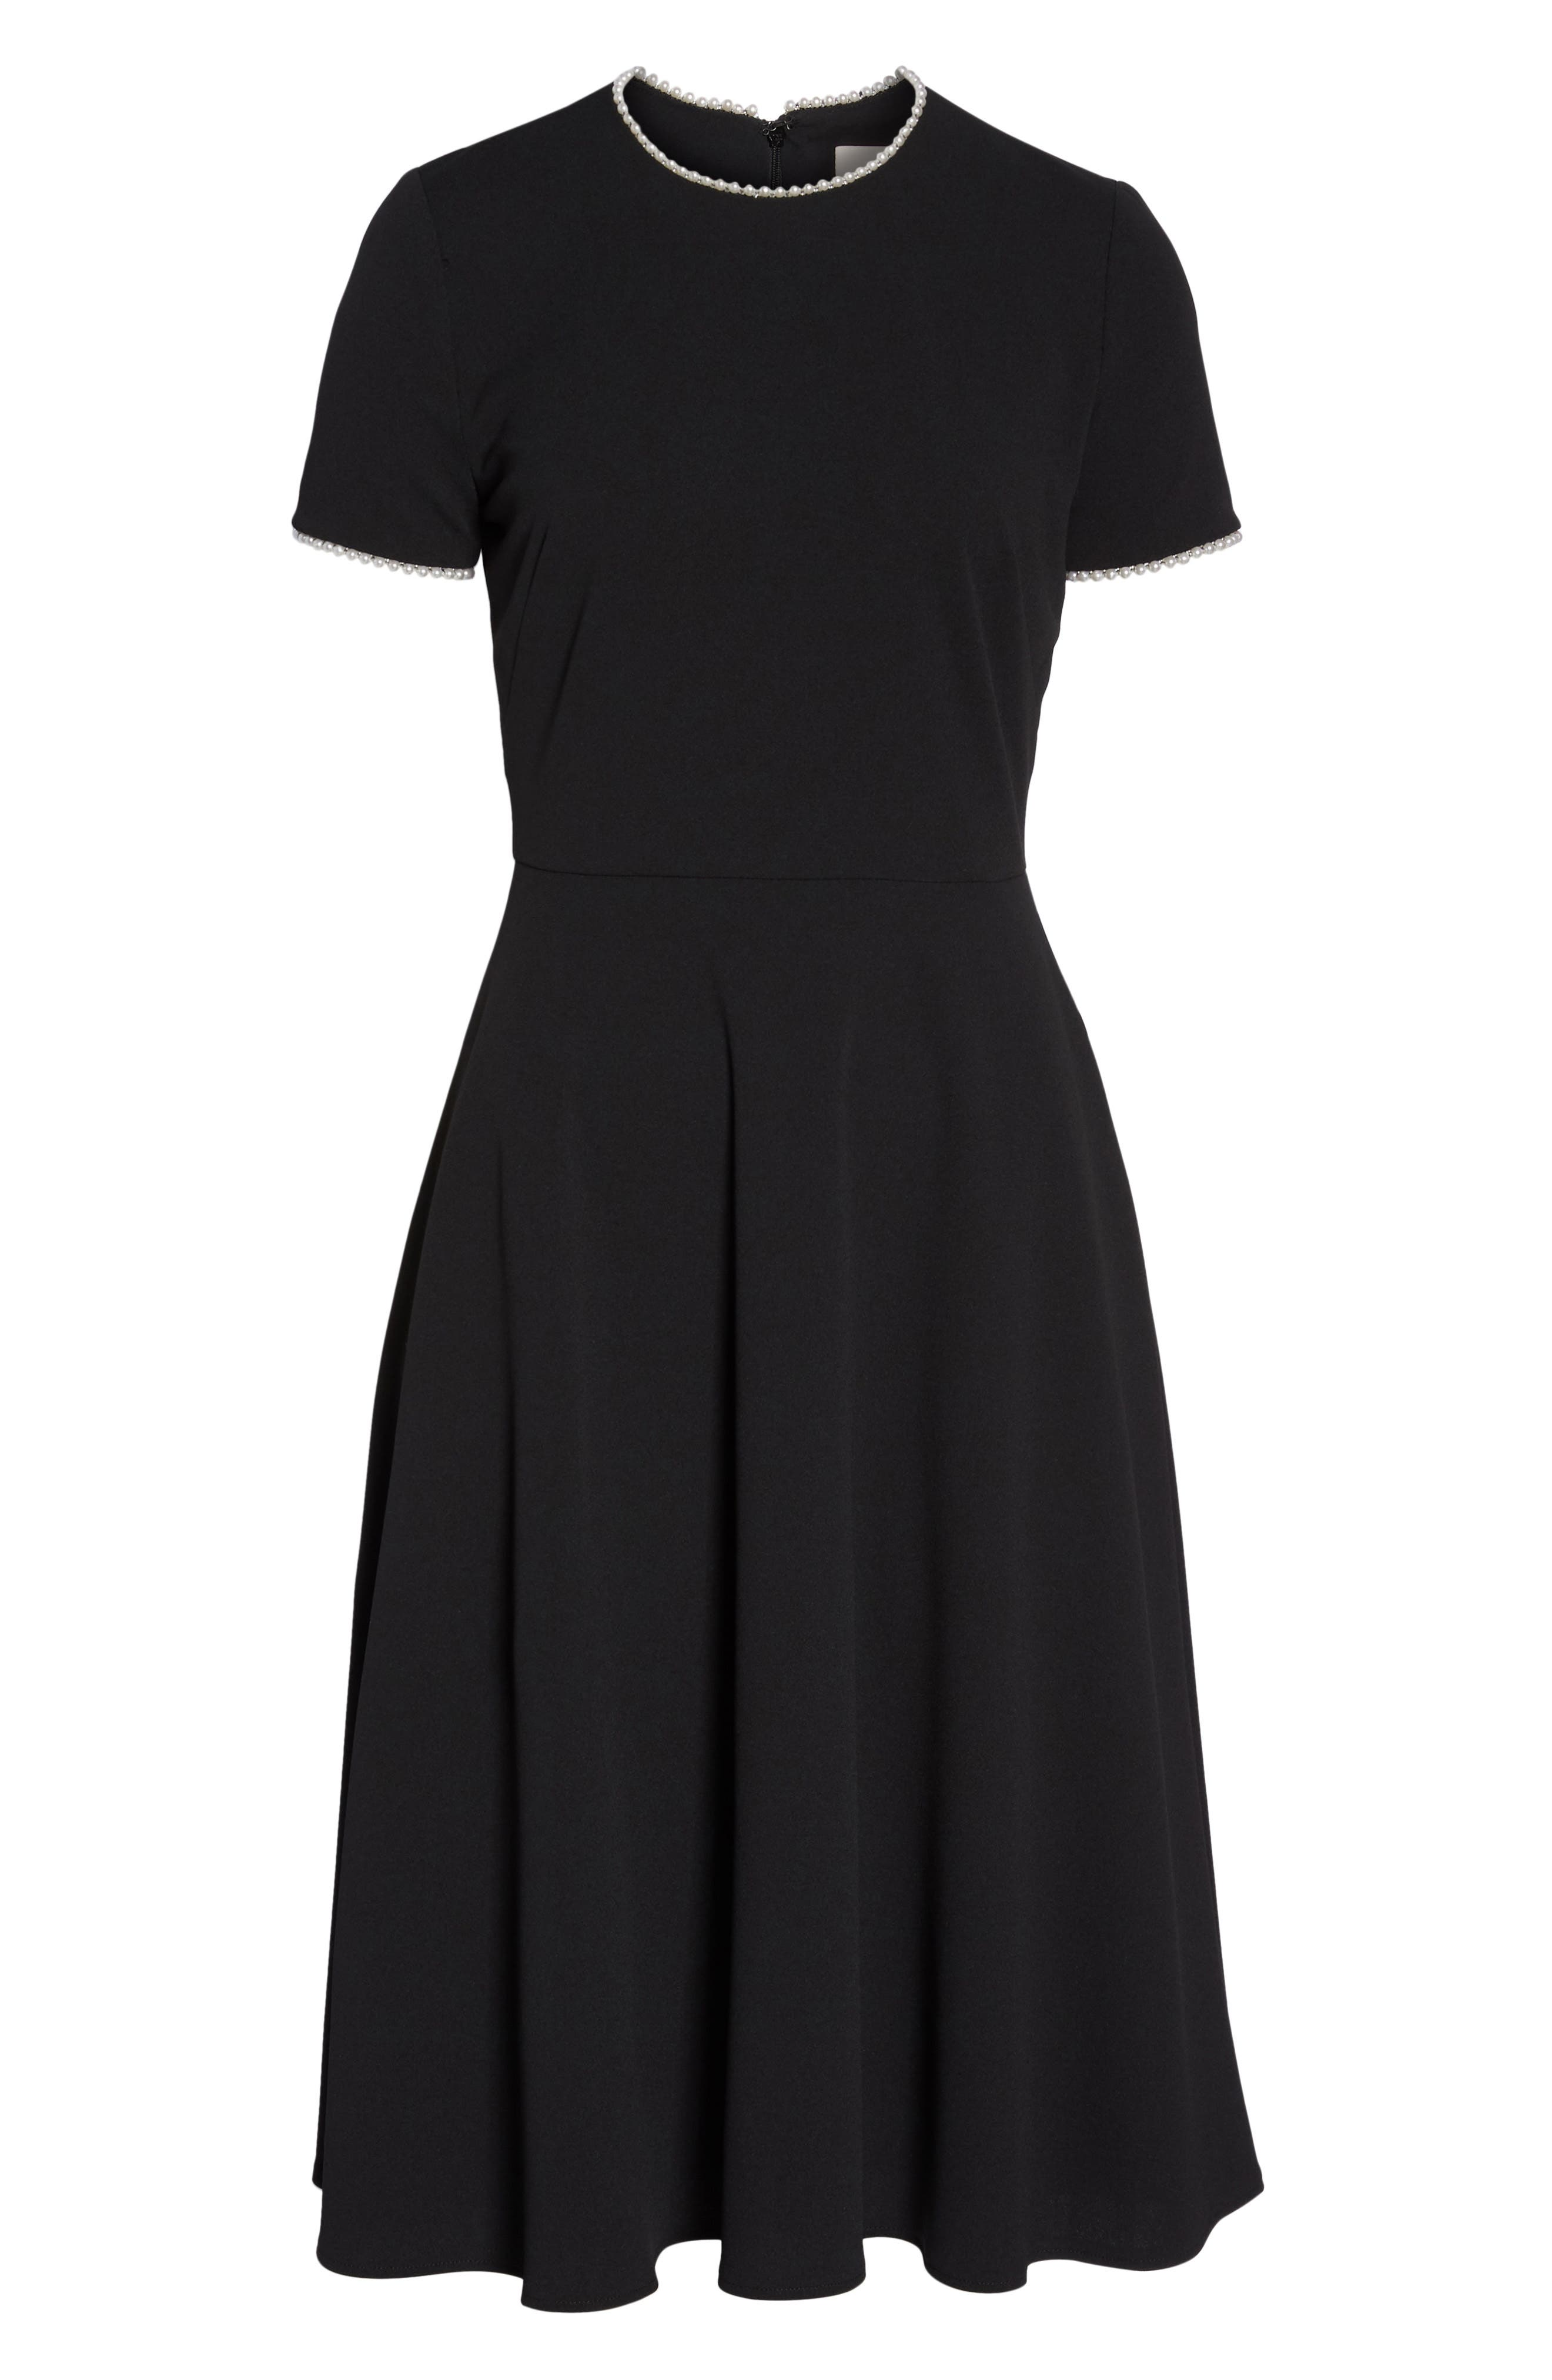 GAL MEETS GLAM COLLECTION, Victoria Pearly Trim Fit & Flare Cocktail Dress, Alternate thumbnail 7, color, BLACK